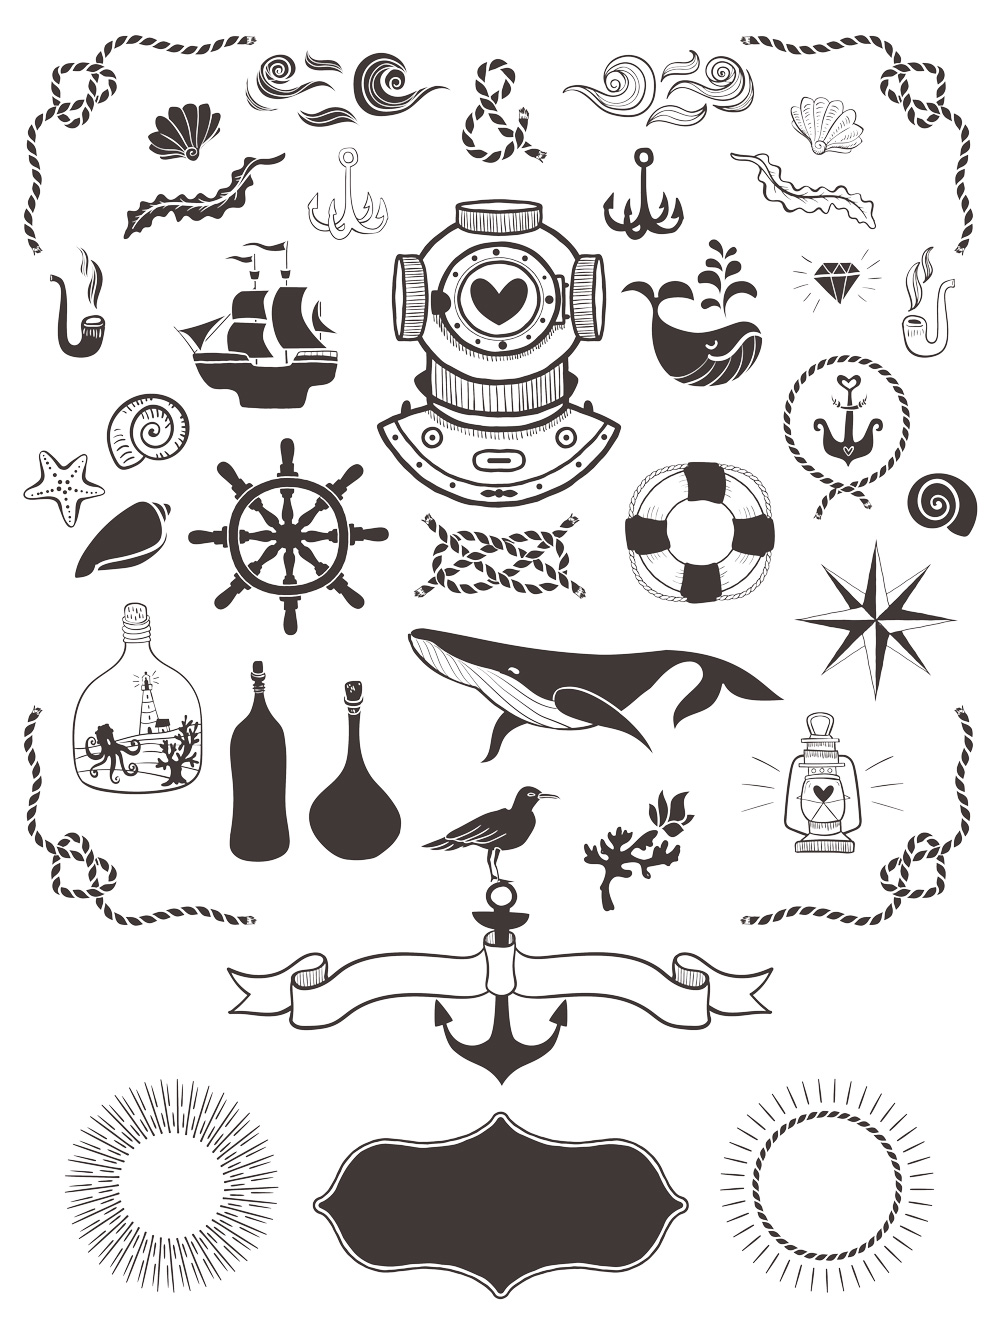 40 free nautical vector elements graphicsfuel. Black Bedroom Furniture Sets. Home Design Ideas